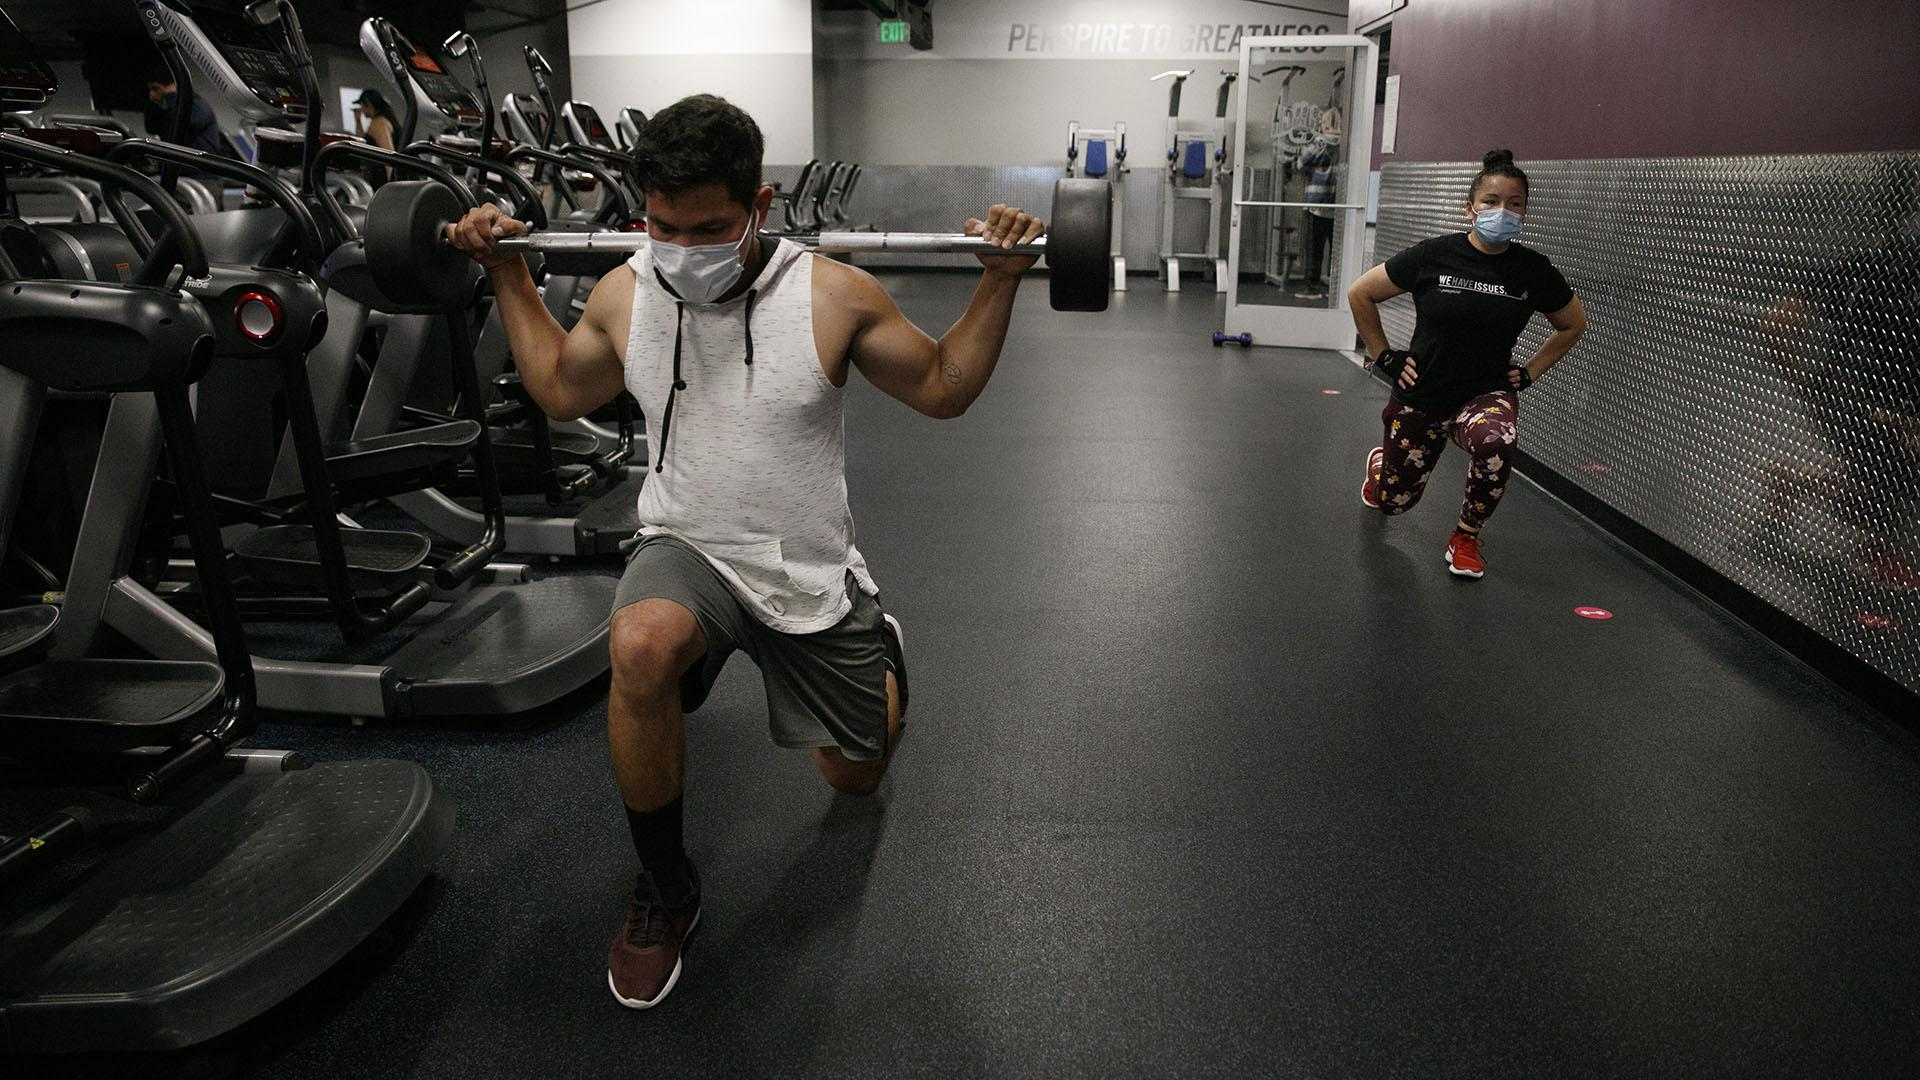 In this Friday, June 26, 2020 file photo, people wear masks while exercising at a gym in Los Angeles. (AP Photo / Jae C. Hong)